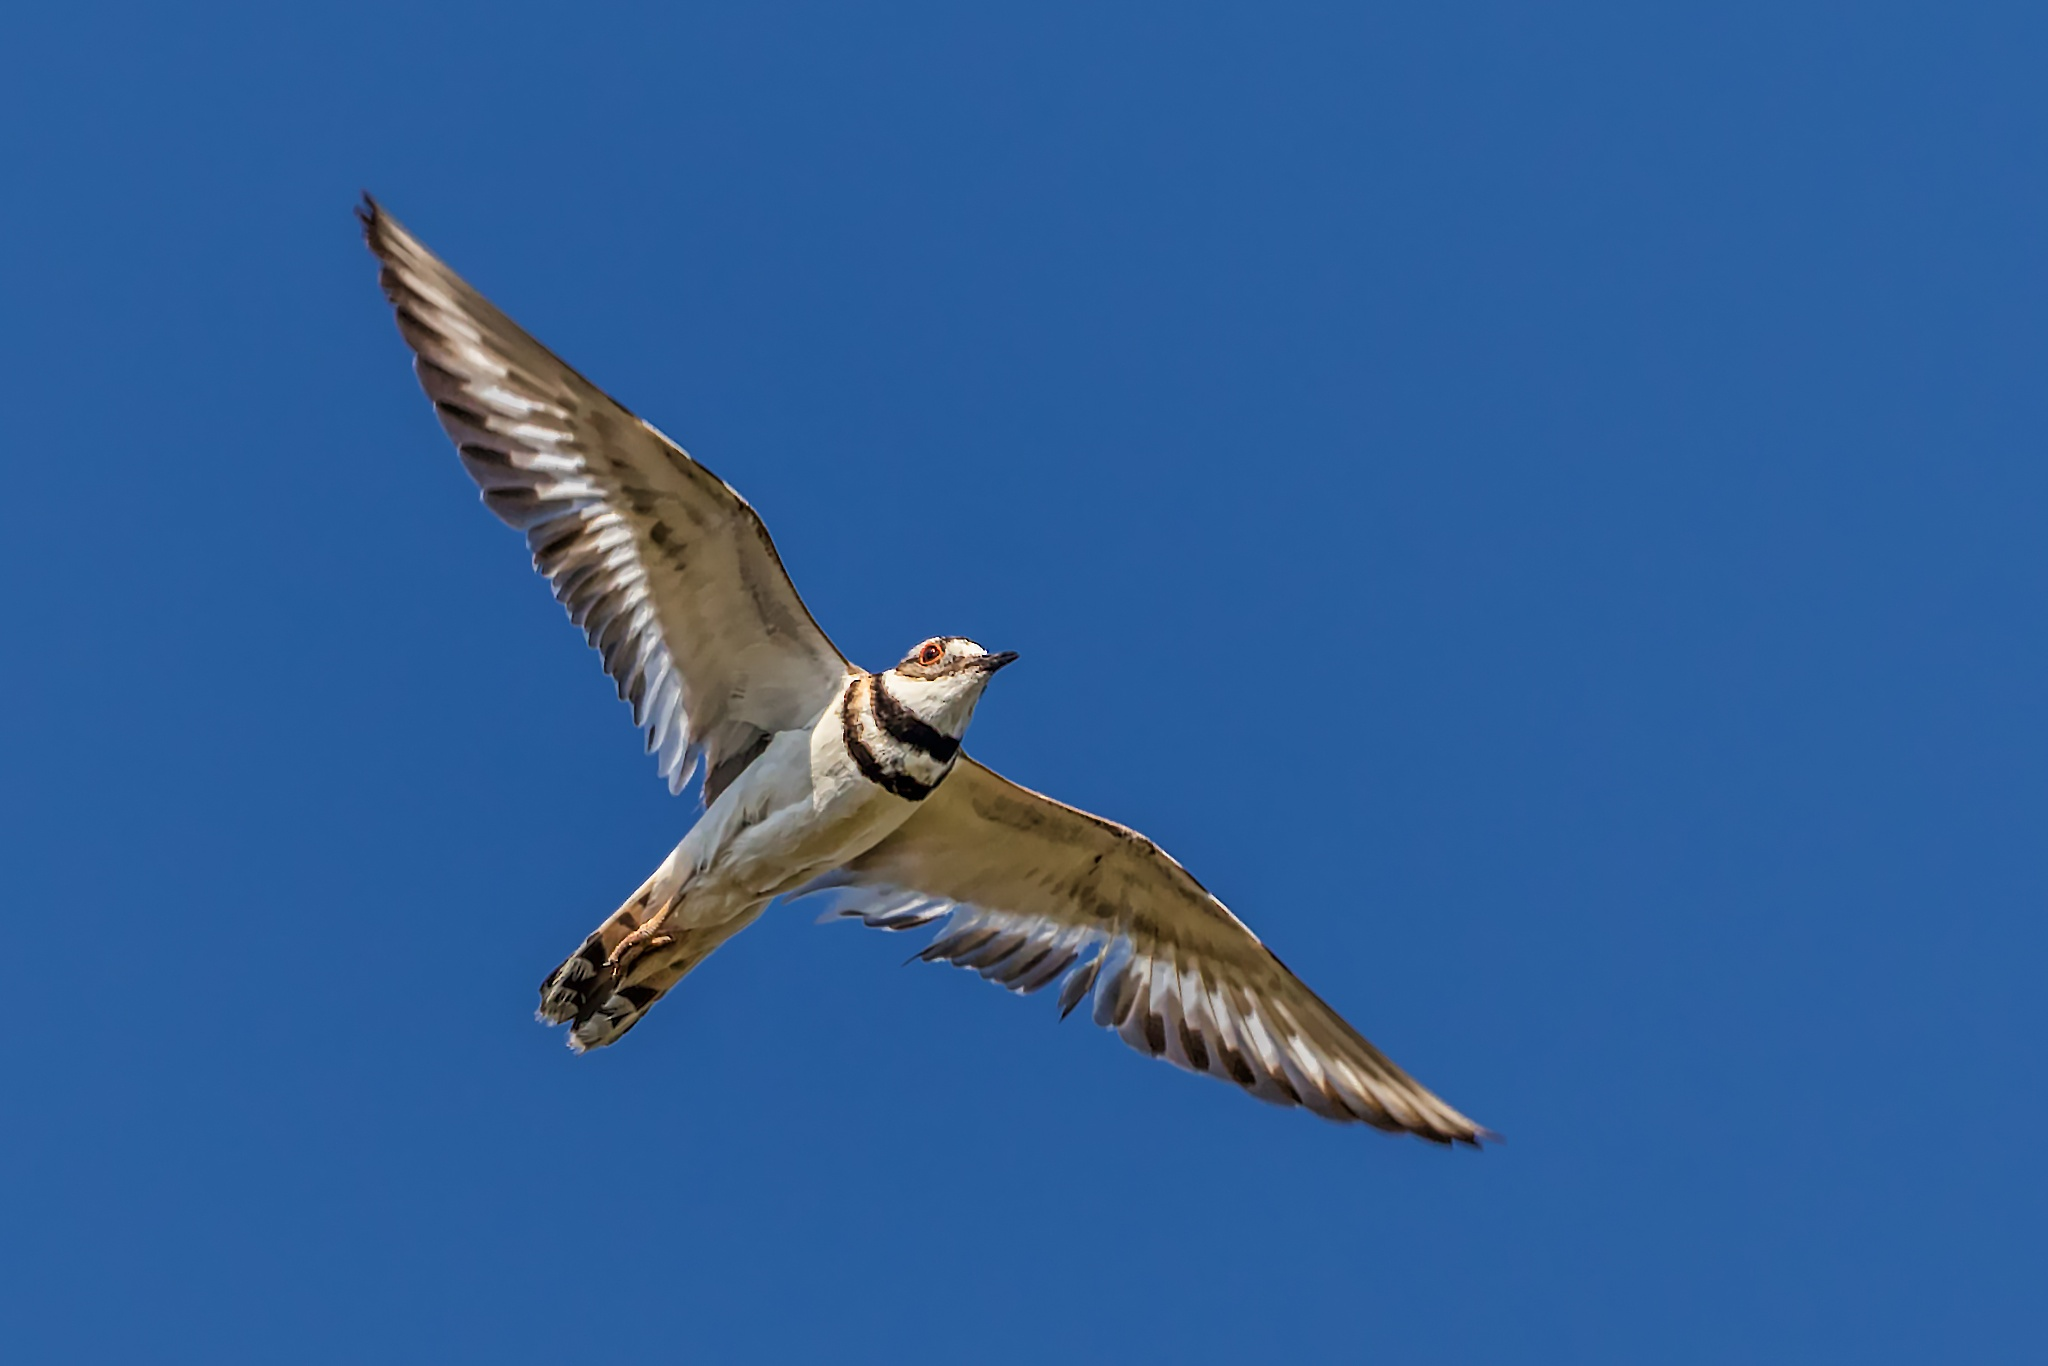 Spread your wings (killdeer) by Boris Droutman